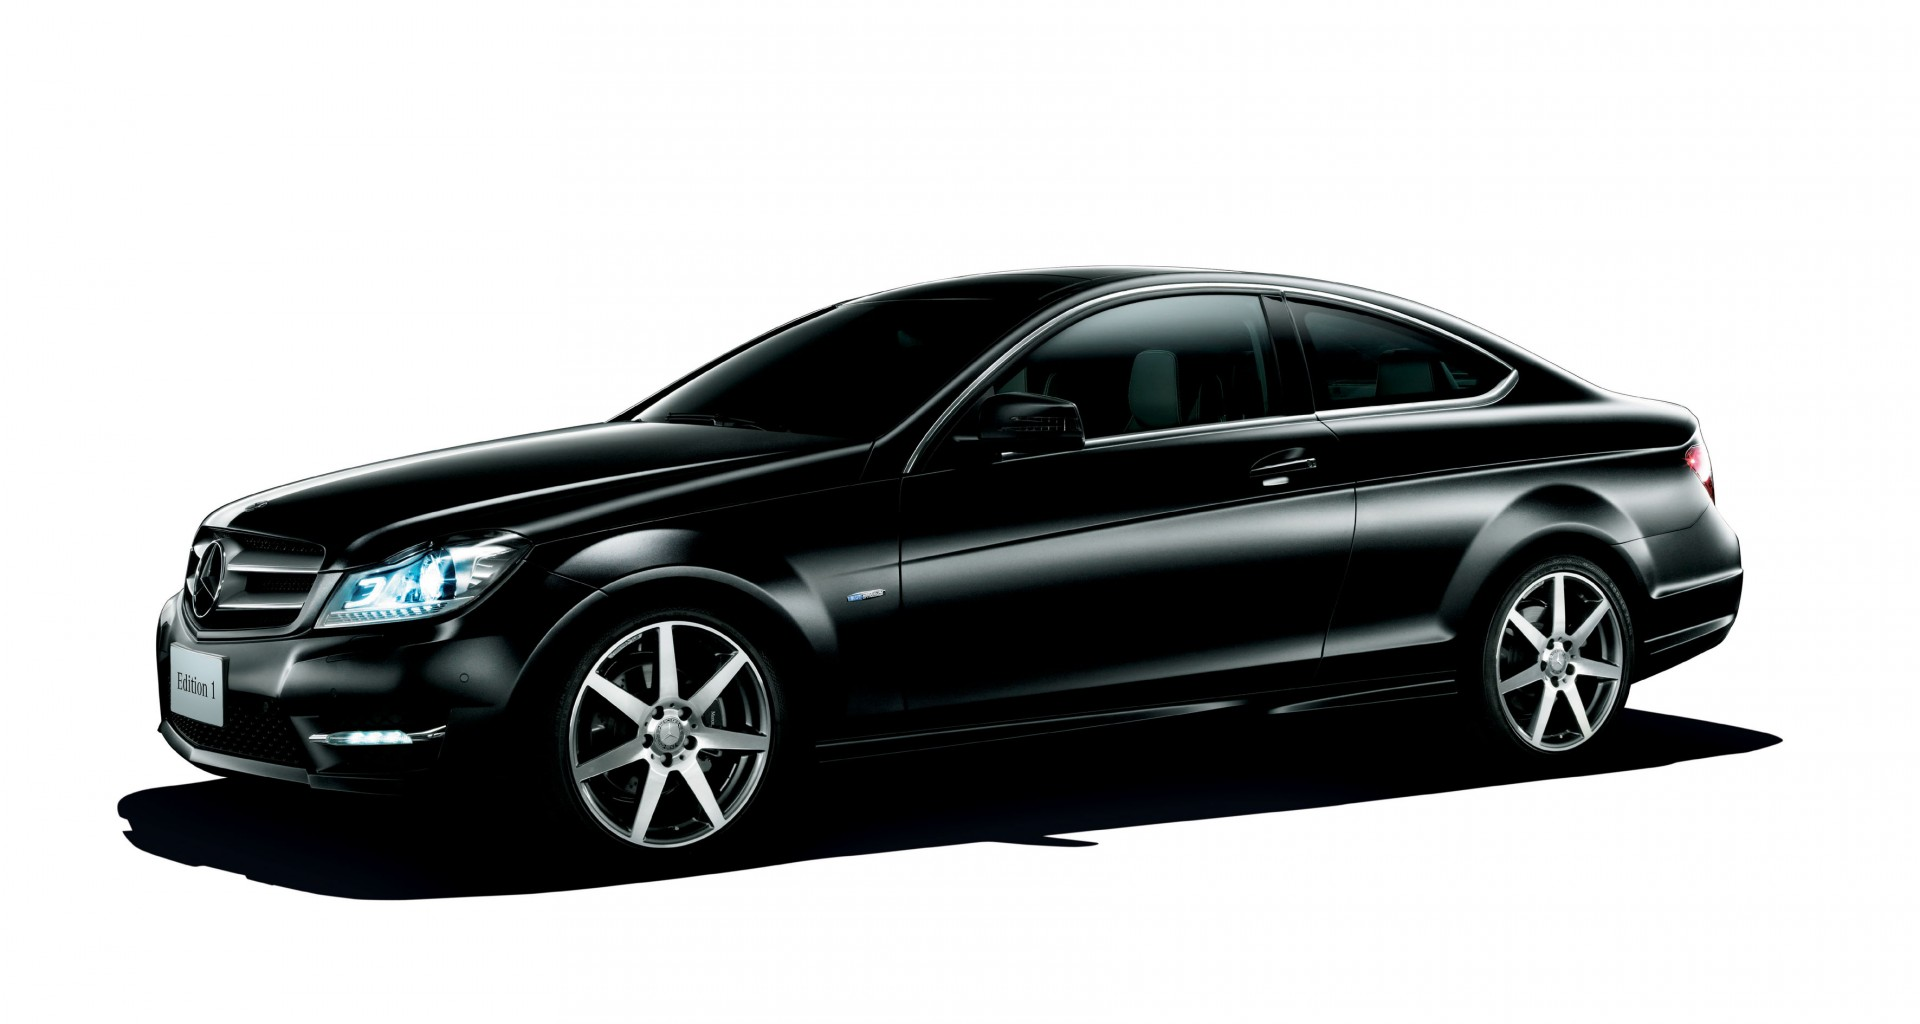 C 250 BlueEFFICIENCYクーペ Edition 1を発売